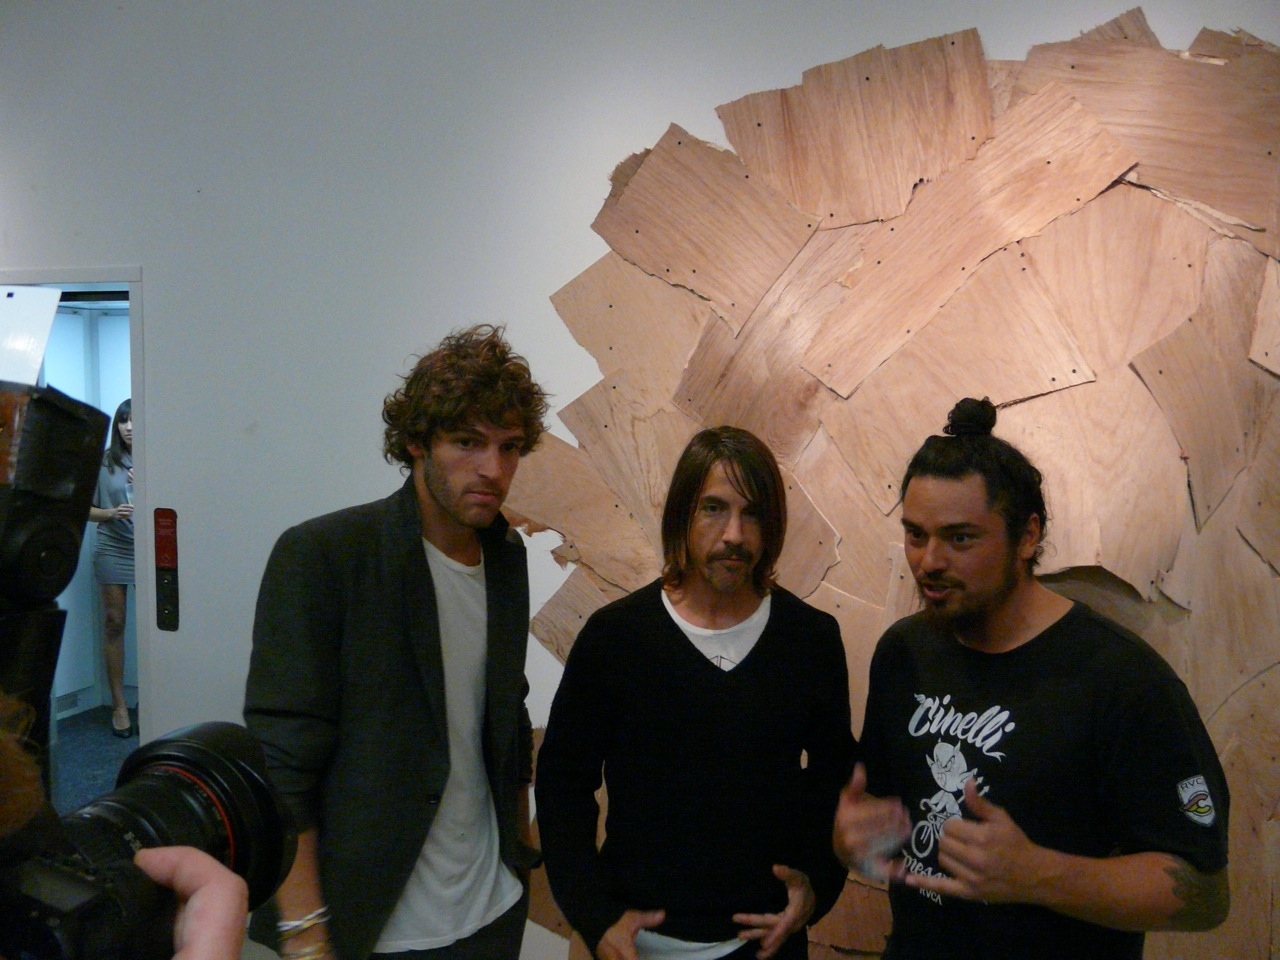 PC Valmorbida (Co-owner of Prism), Anthony Kiedis (Red Hot Chili Peppers), PM Tenore of RVCA (Curator)